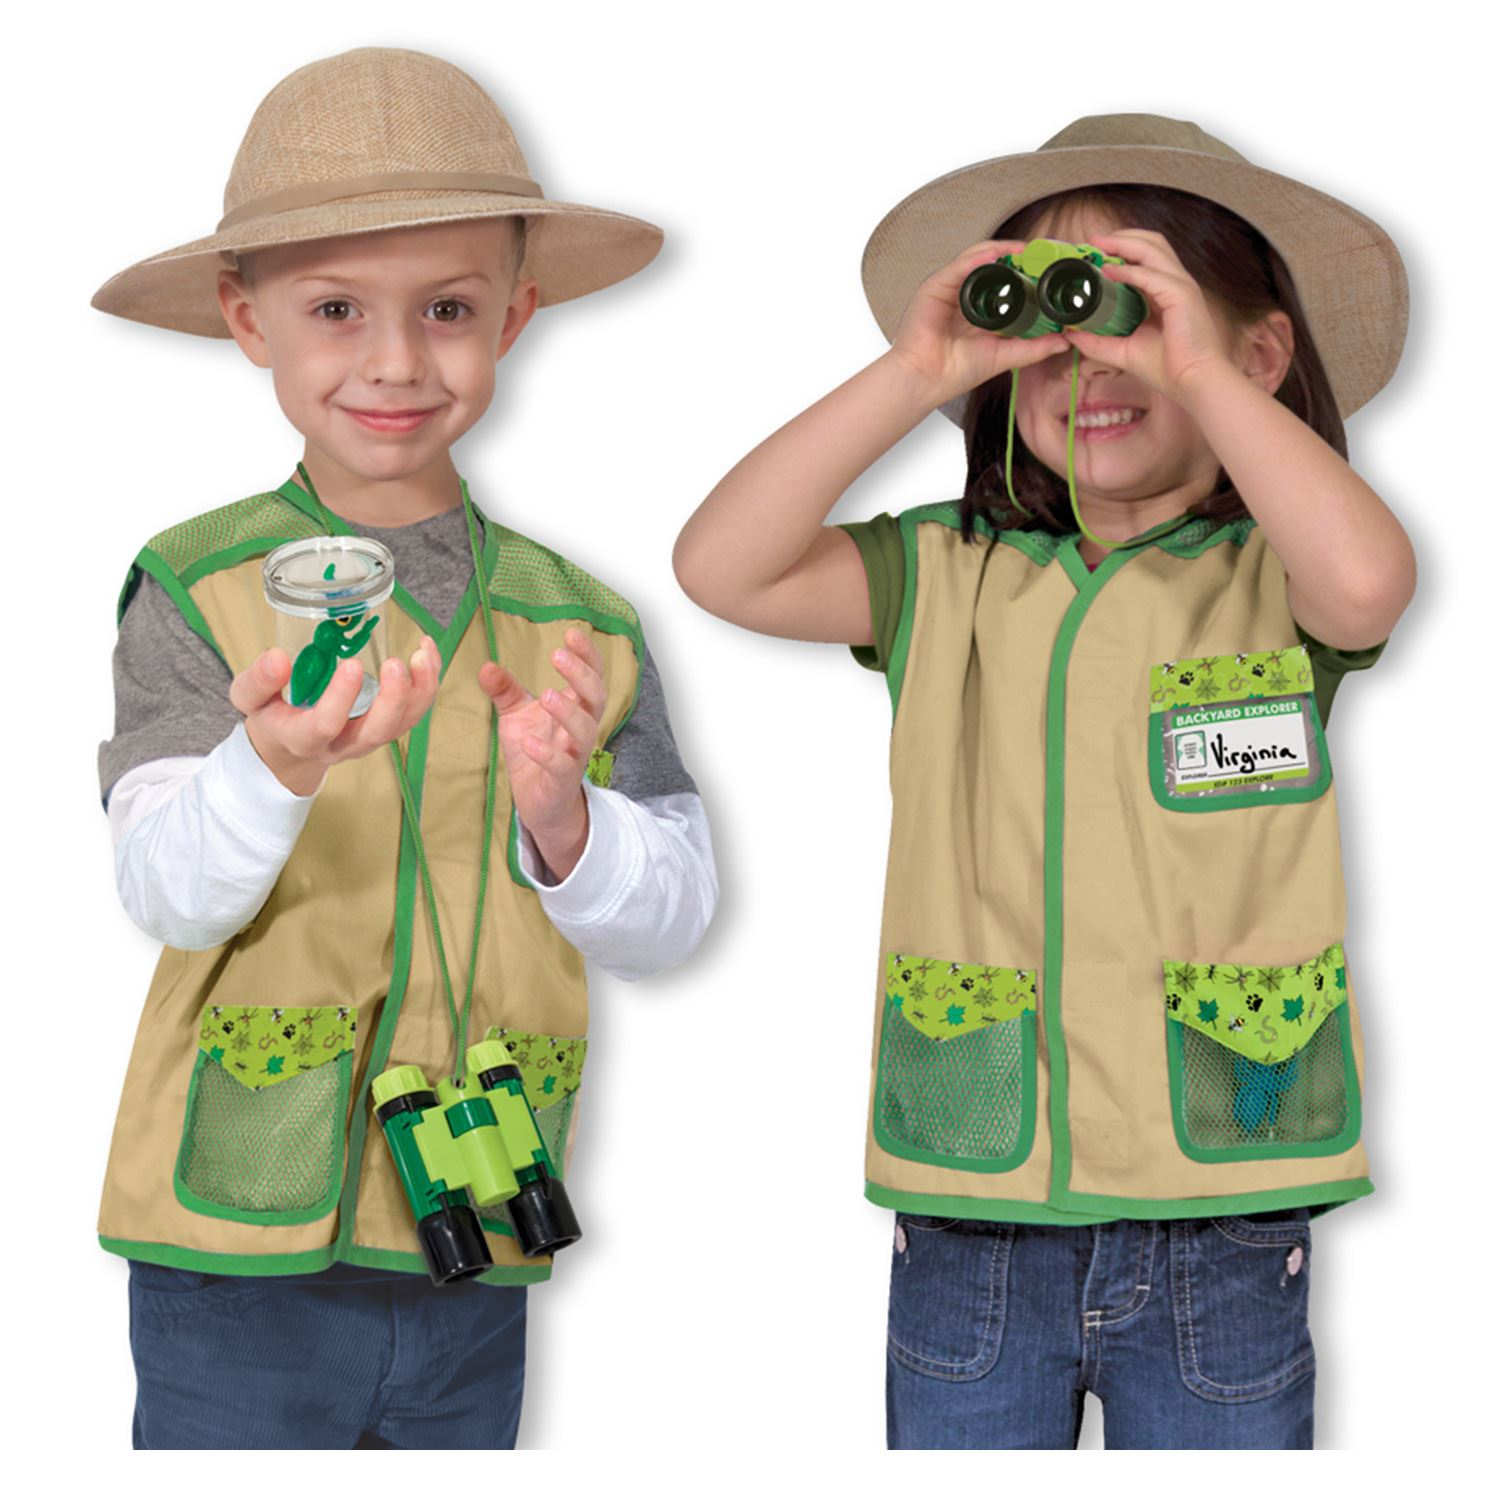 Halloween costumes are more expensive every year. Save money by creating a Halloween costume for your child. Safari Vest for Boy. There is no easier costume than a paper bag mask. Grab a paper bag and cut out holes for your eyes then grab a few markers and let your imagination go wild. They are so simple for kids to make and to wear.